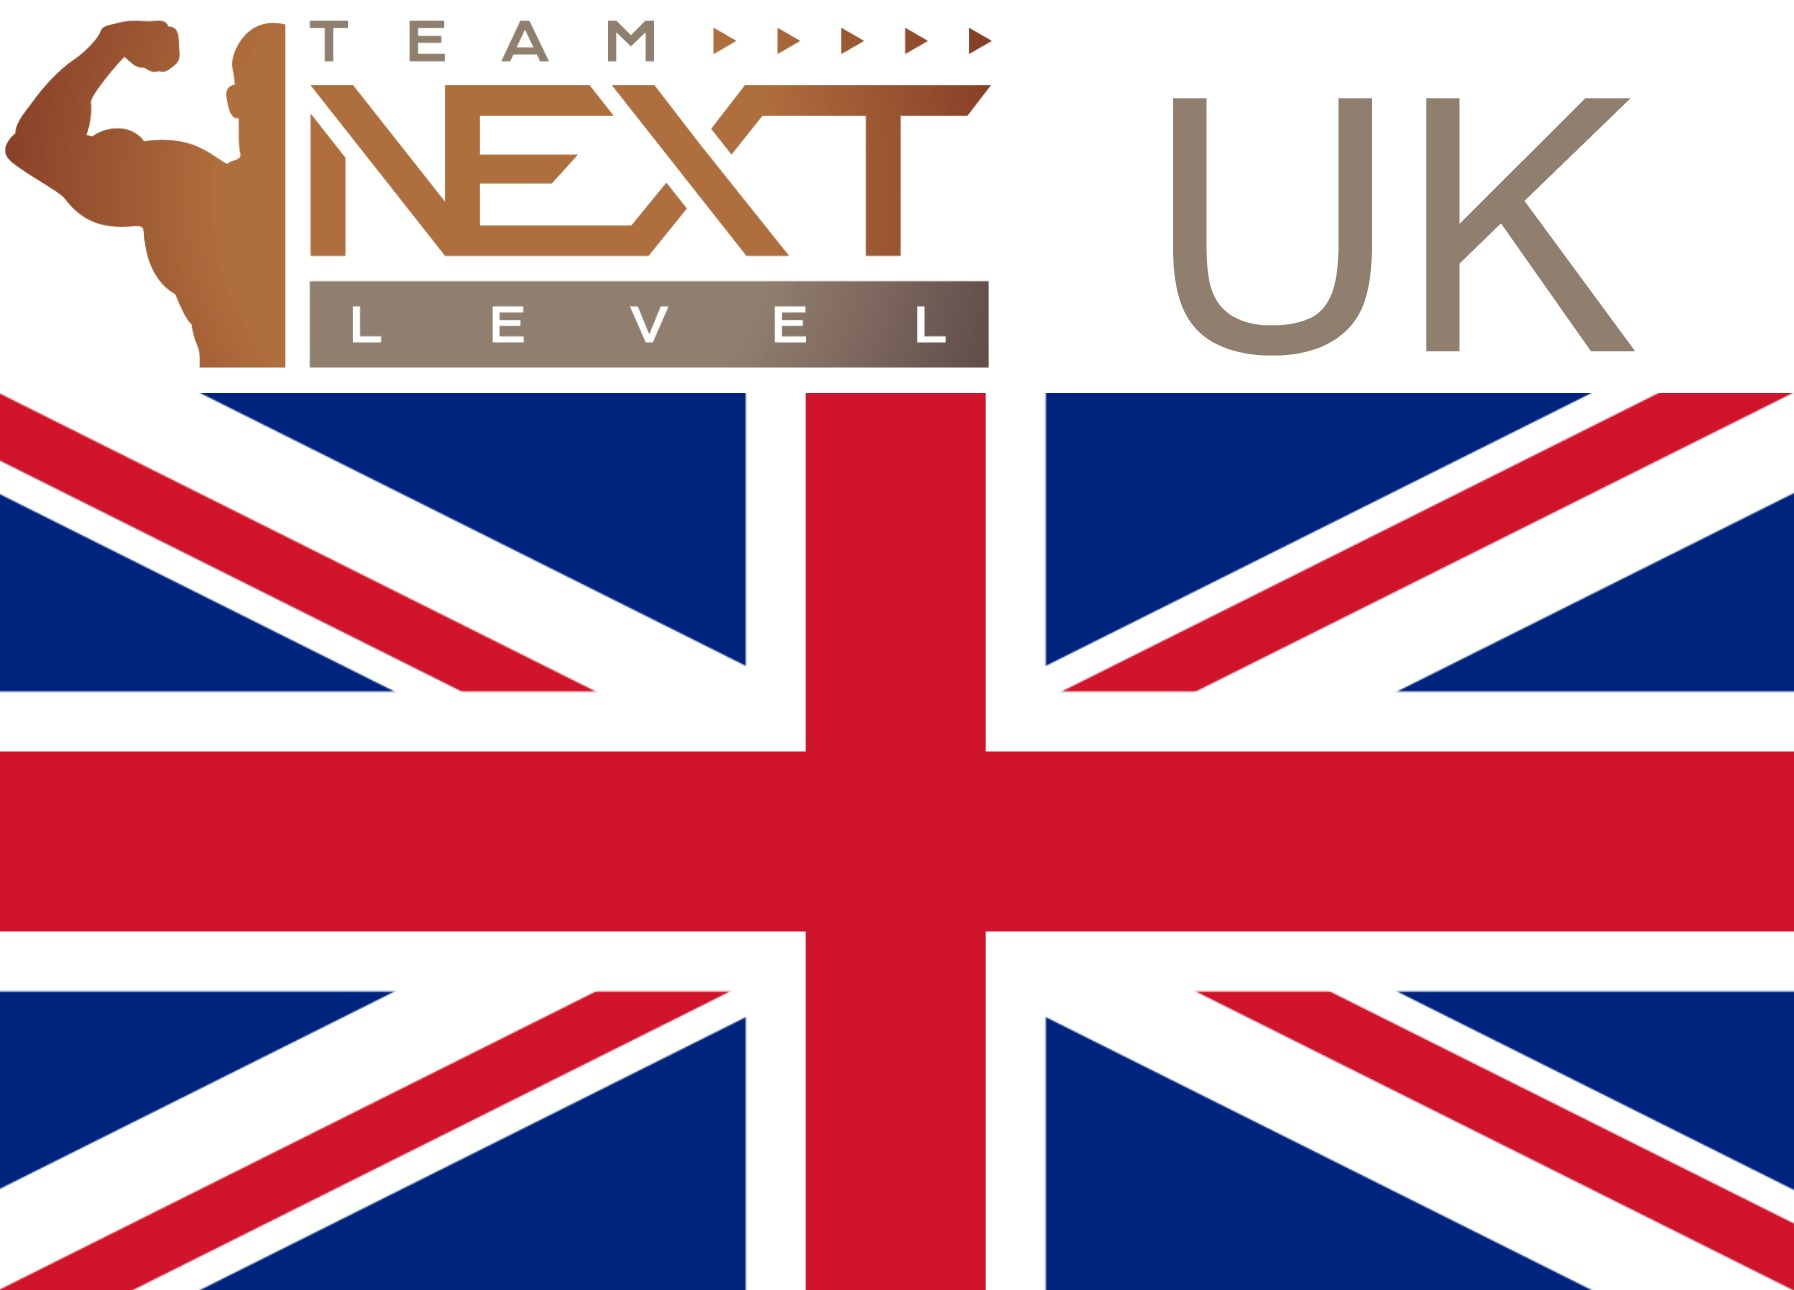 Top Beachbody Coaches coming to the UK